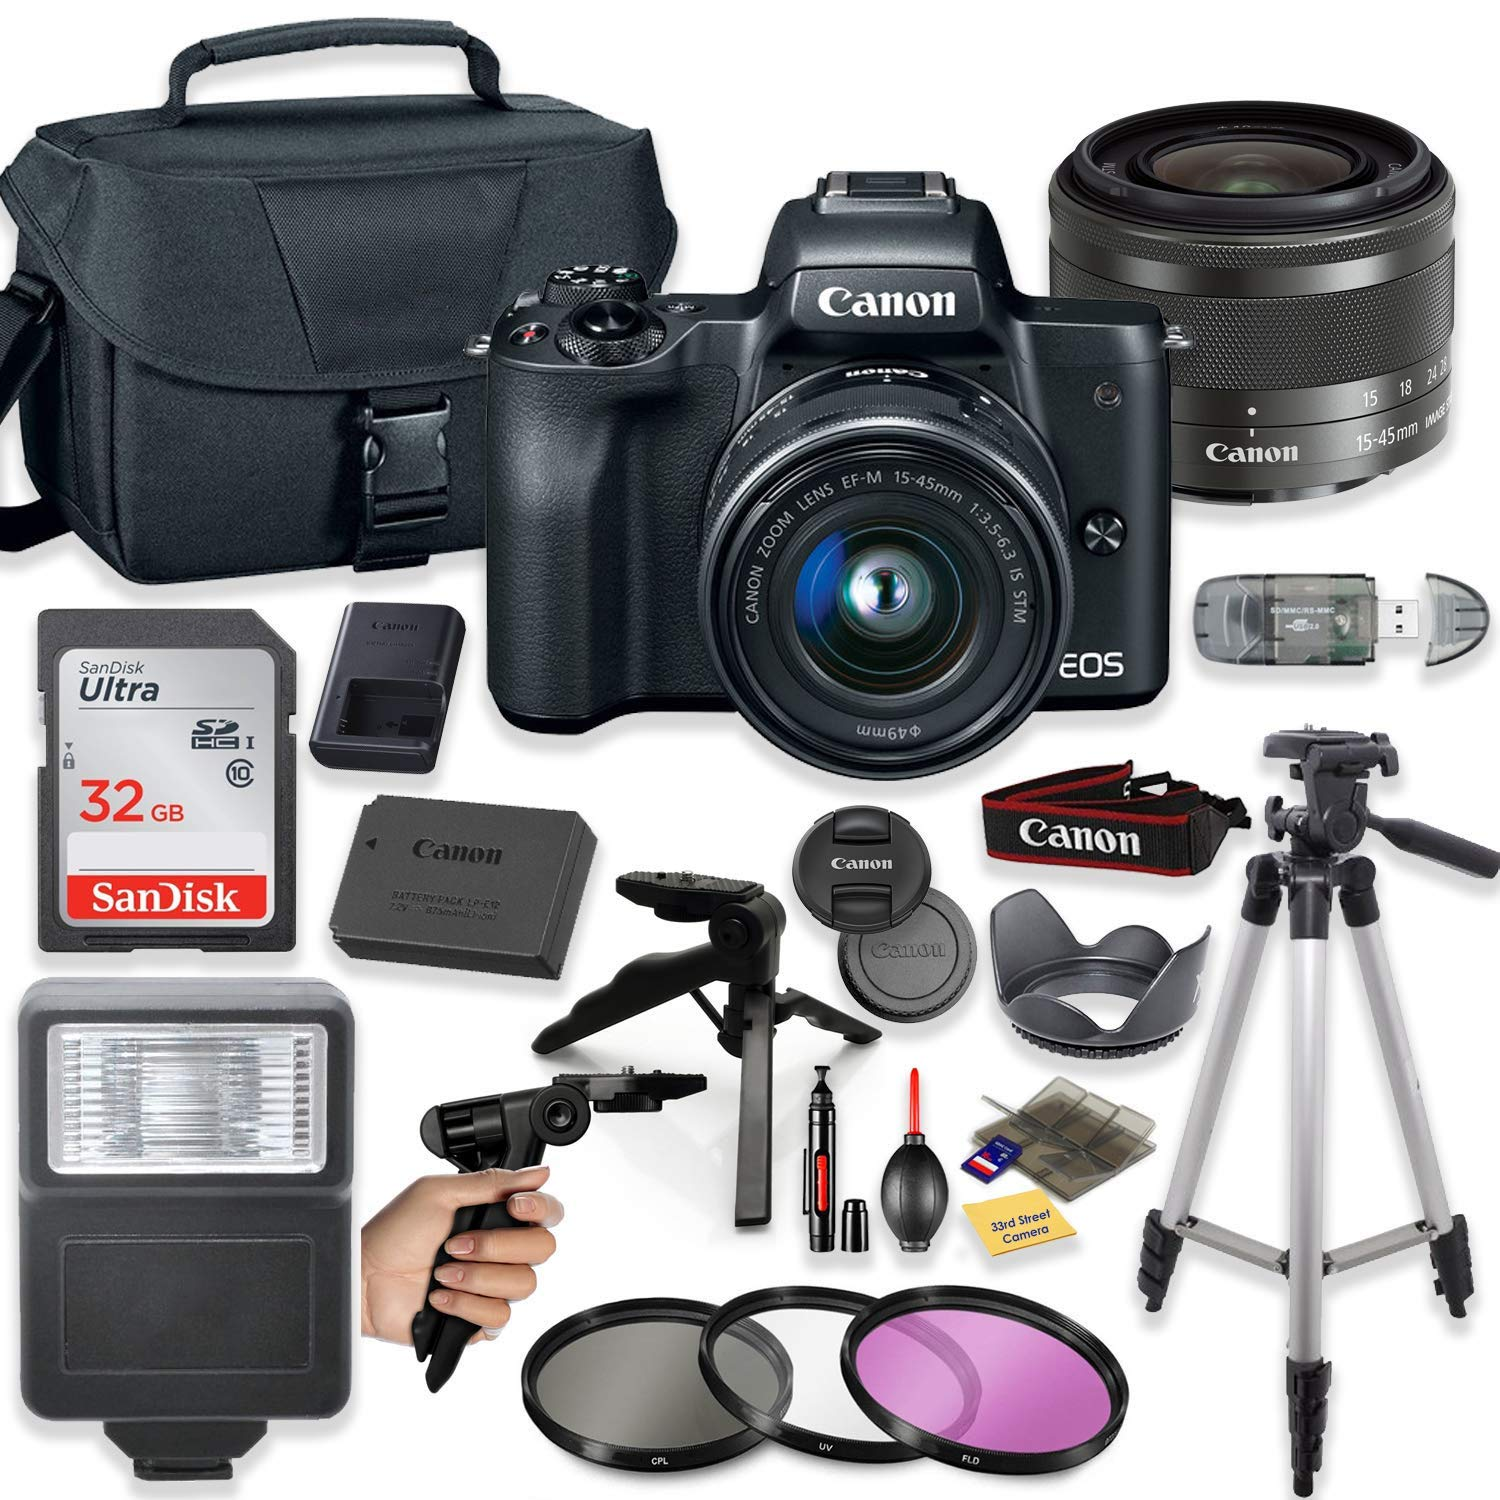 Canon EOS M50 Mirrorless Digital Camera (Black) with 15-45mm STM Lens + Deluxe Accessory Bundle Including Sandisk 32GB Card, Canon Case, Flash, Grip Multi Angle Tripod, 50'' Tripod, Filters and More. by Canon